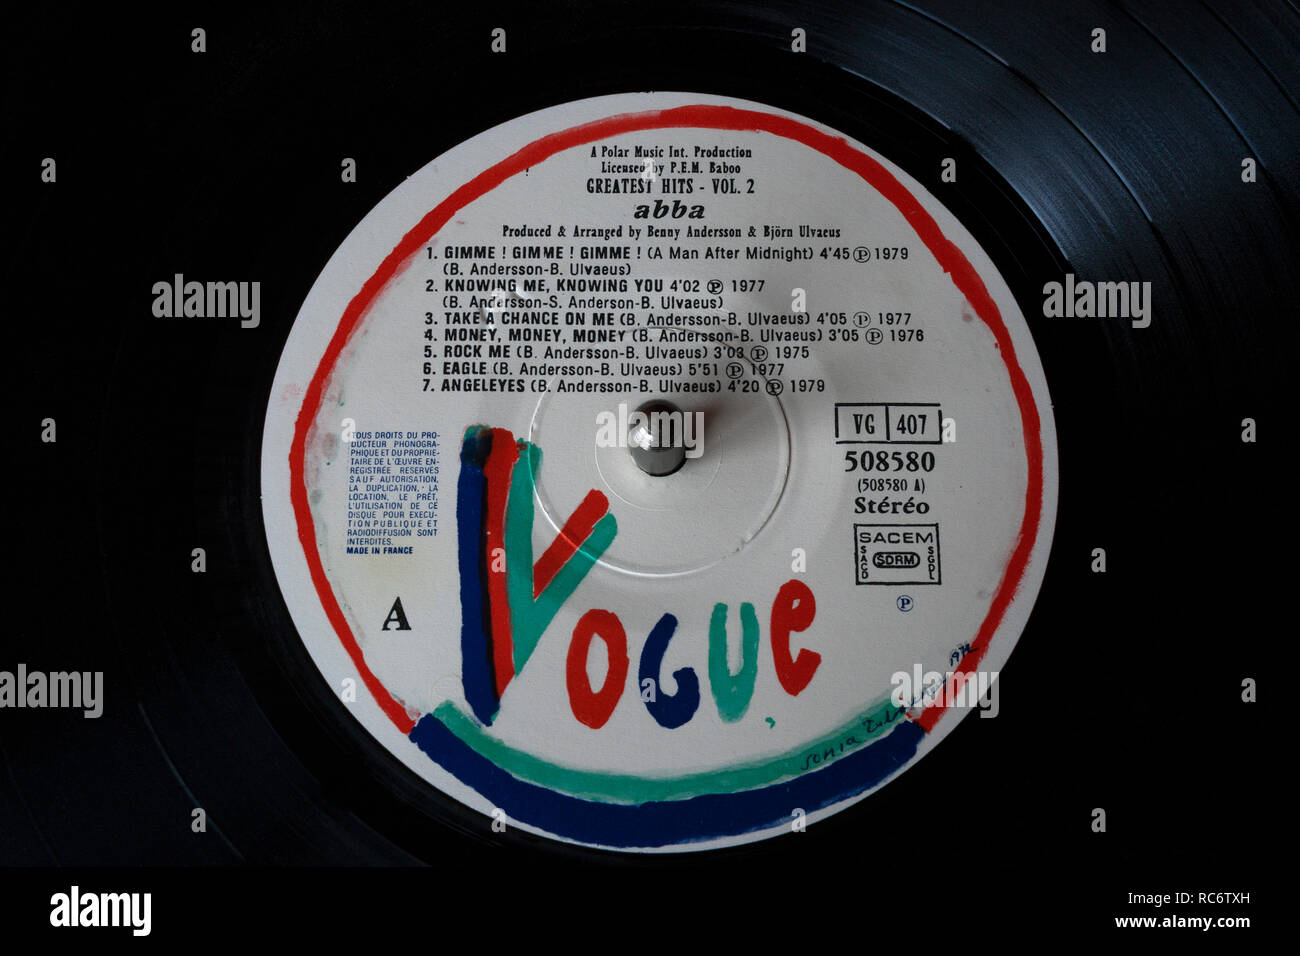 Abba vinyl record & label - Greatest Hits Vol 2 album 'Disques (Français Vogue' record label) Photo Stock